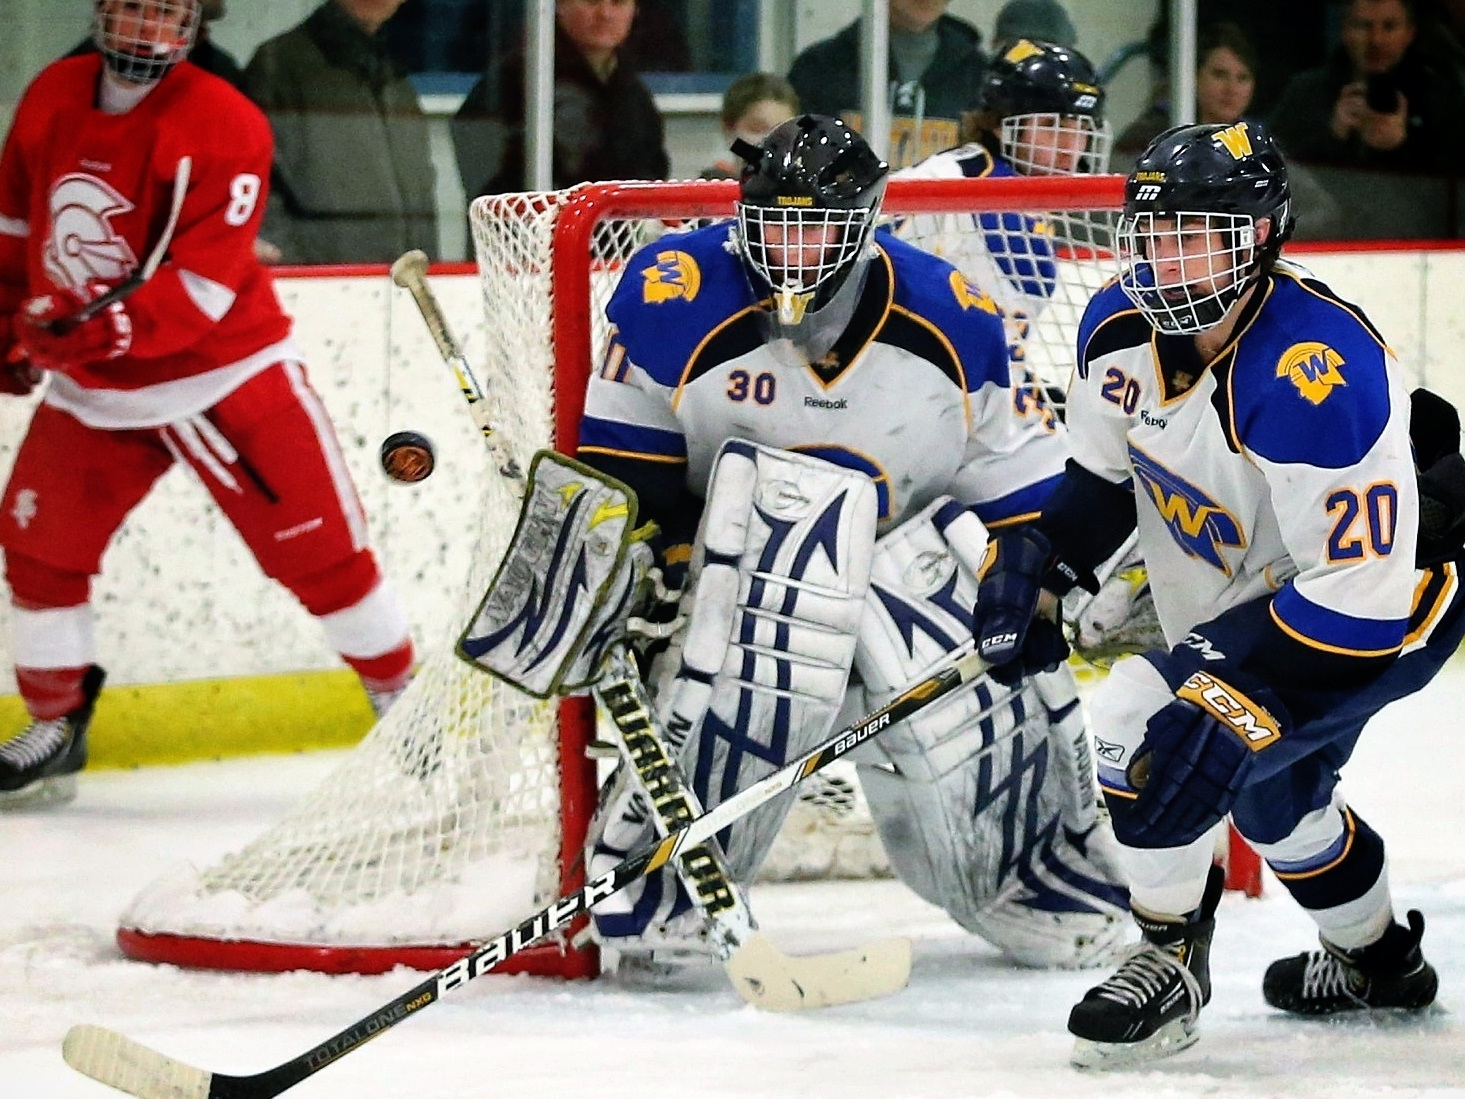 MN H.S.: Wayzata Eruption Stuns Benilde - Trojans' Big Second Period Sends Them To Rout Of Red Knights In Tournament Title Game